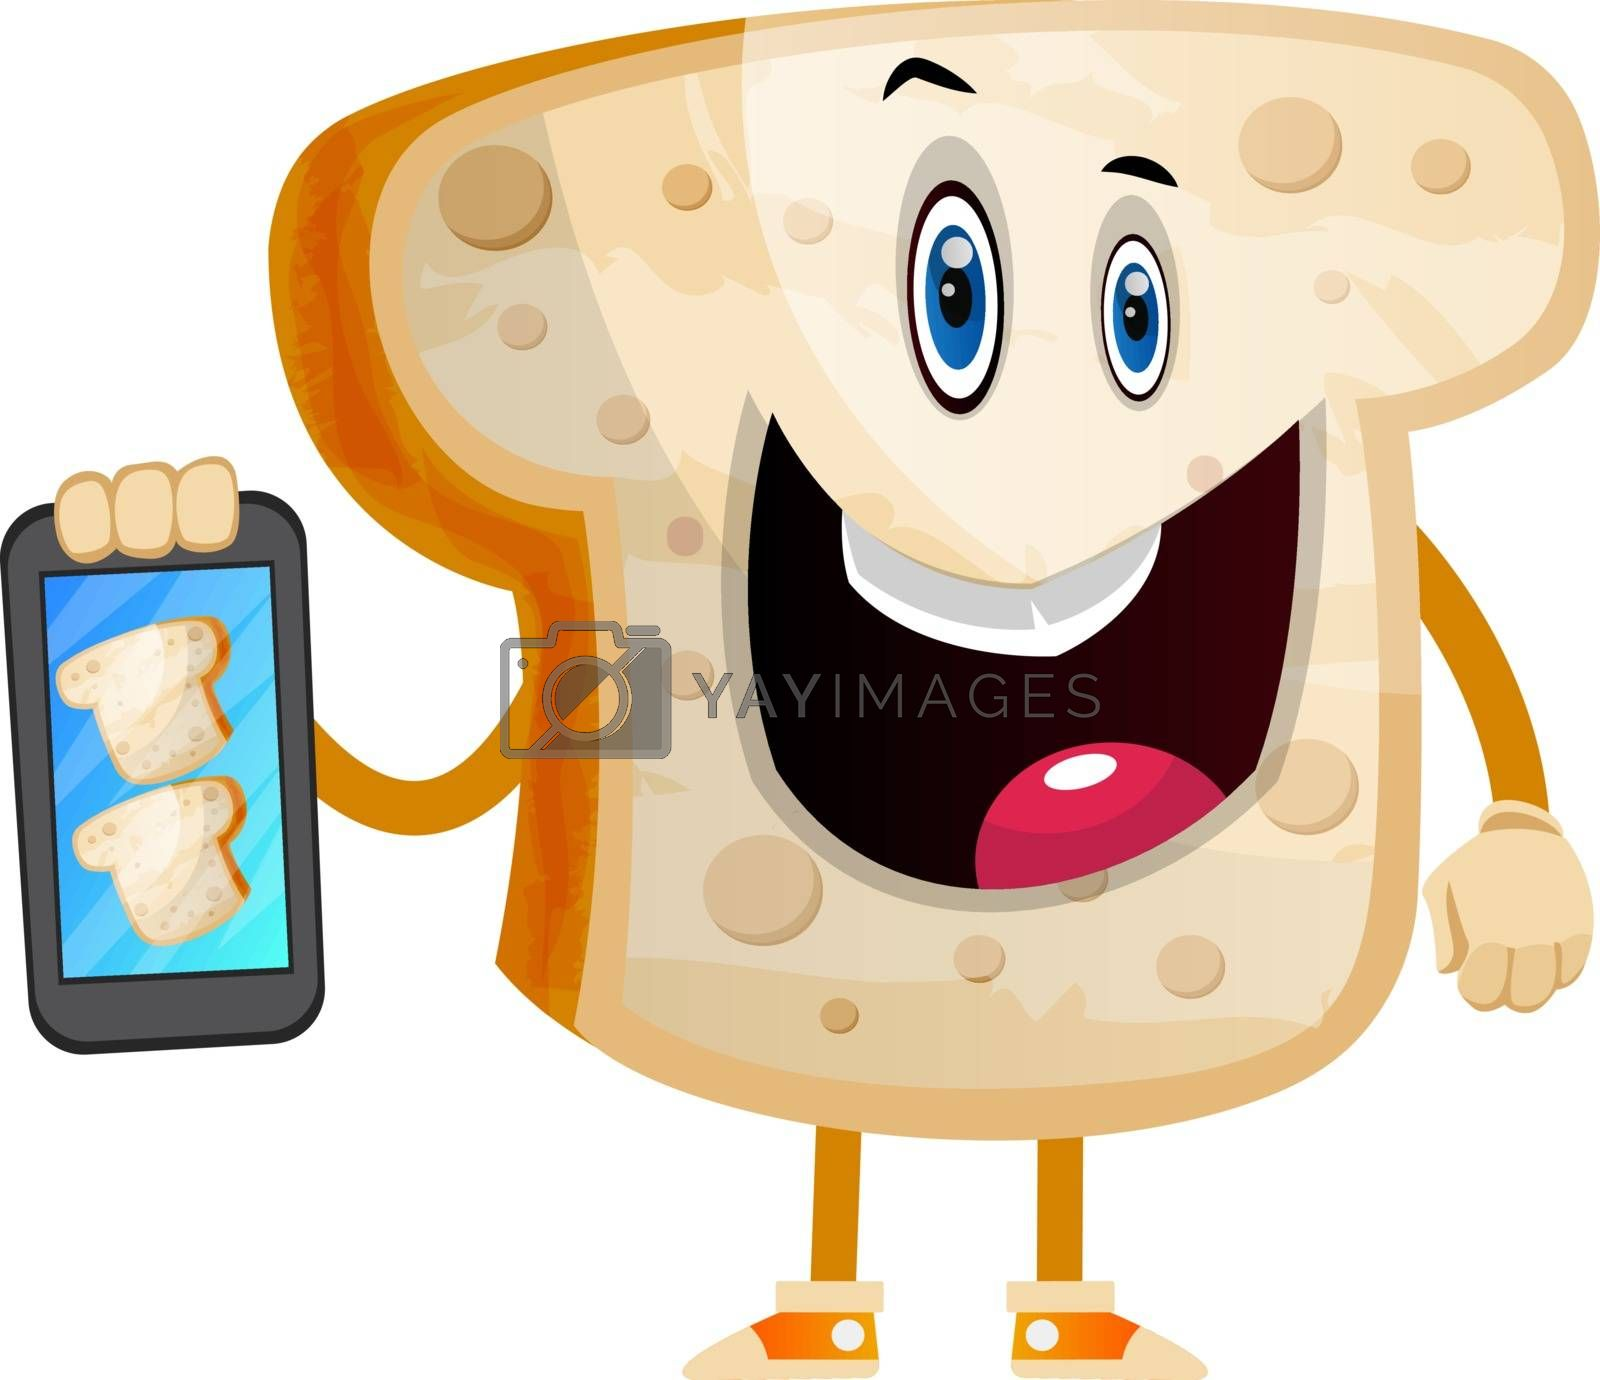 Royalty free image of Selfie Bread illustration vector on white background by Morphart